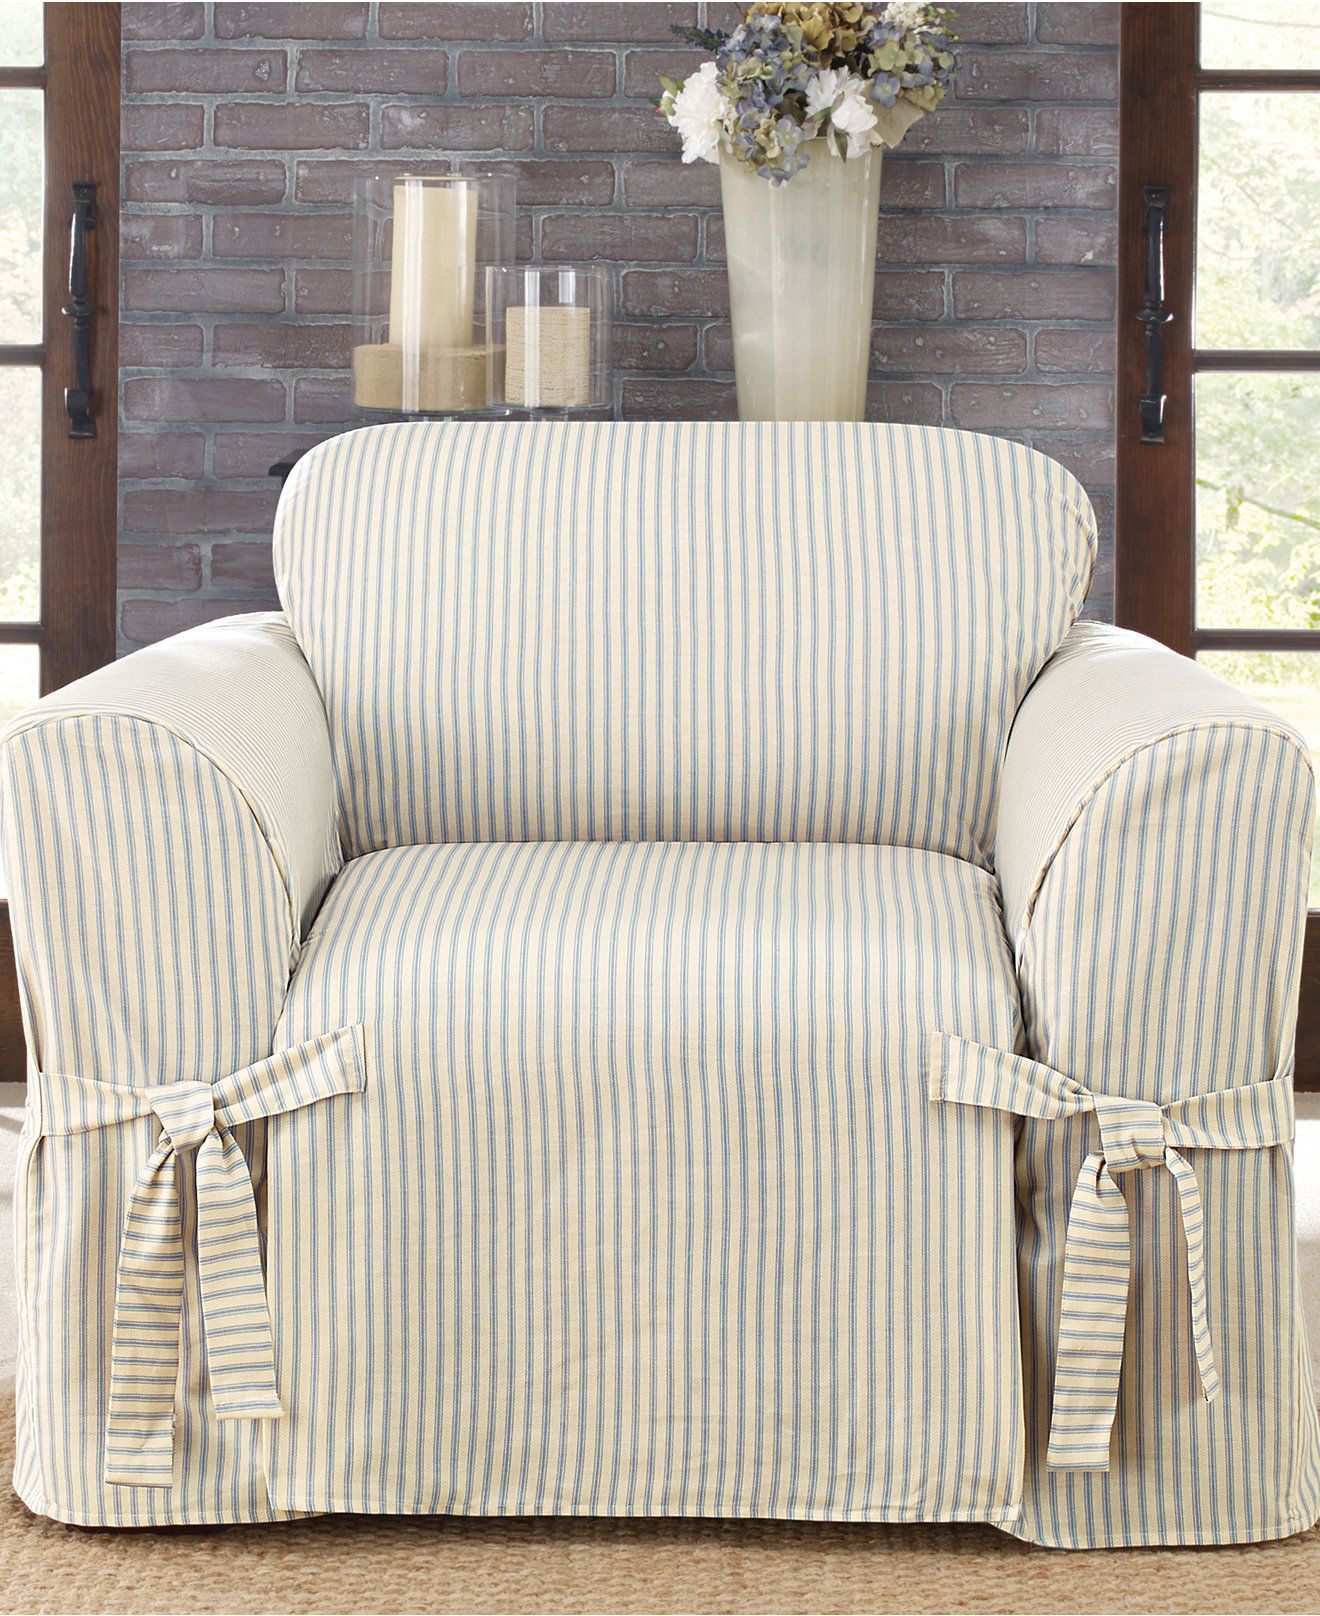 Merveilleux Sure Fit Ticking Stripe Chair Slipcover   Slipcovers   For The Home   Macyu0027s